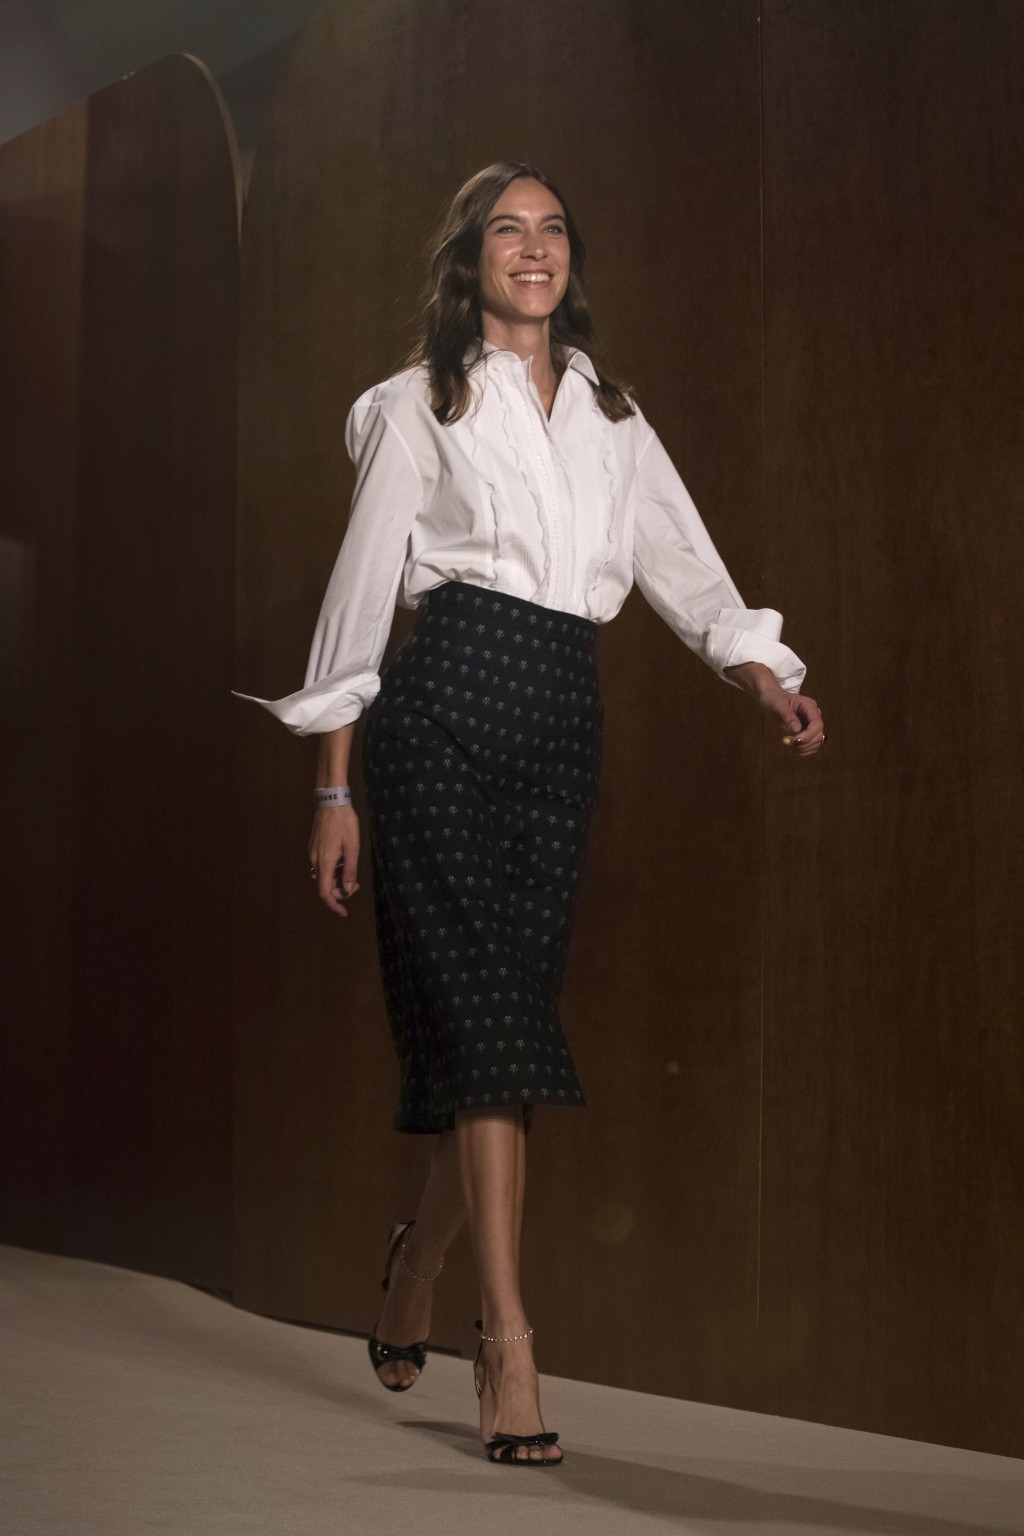 Designer Alexa Chung acknowledges applause following her Spring/Summer 2019 runway show at London Fashion Week in London, Friday, Sept. 15, 2018. (Pho